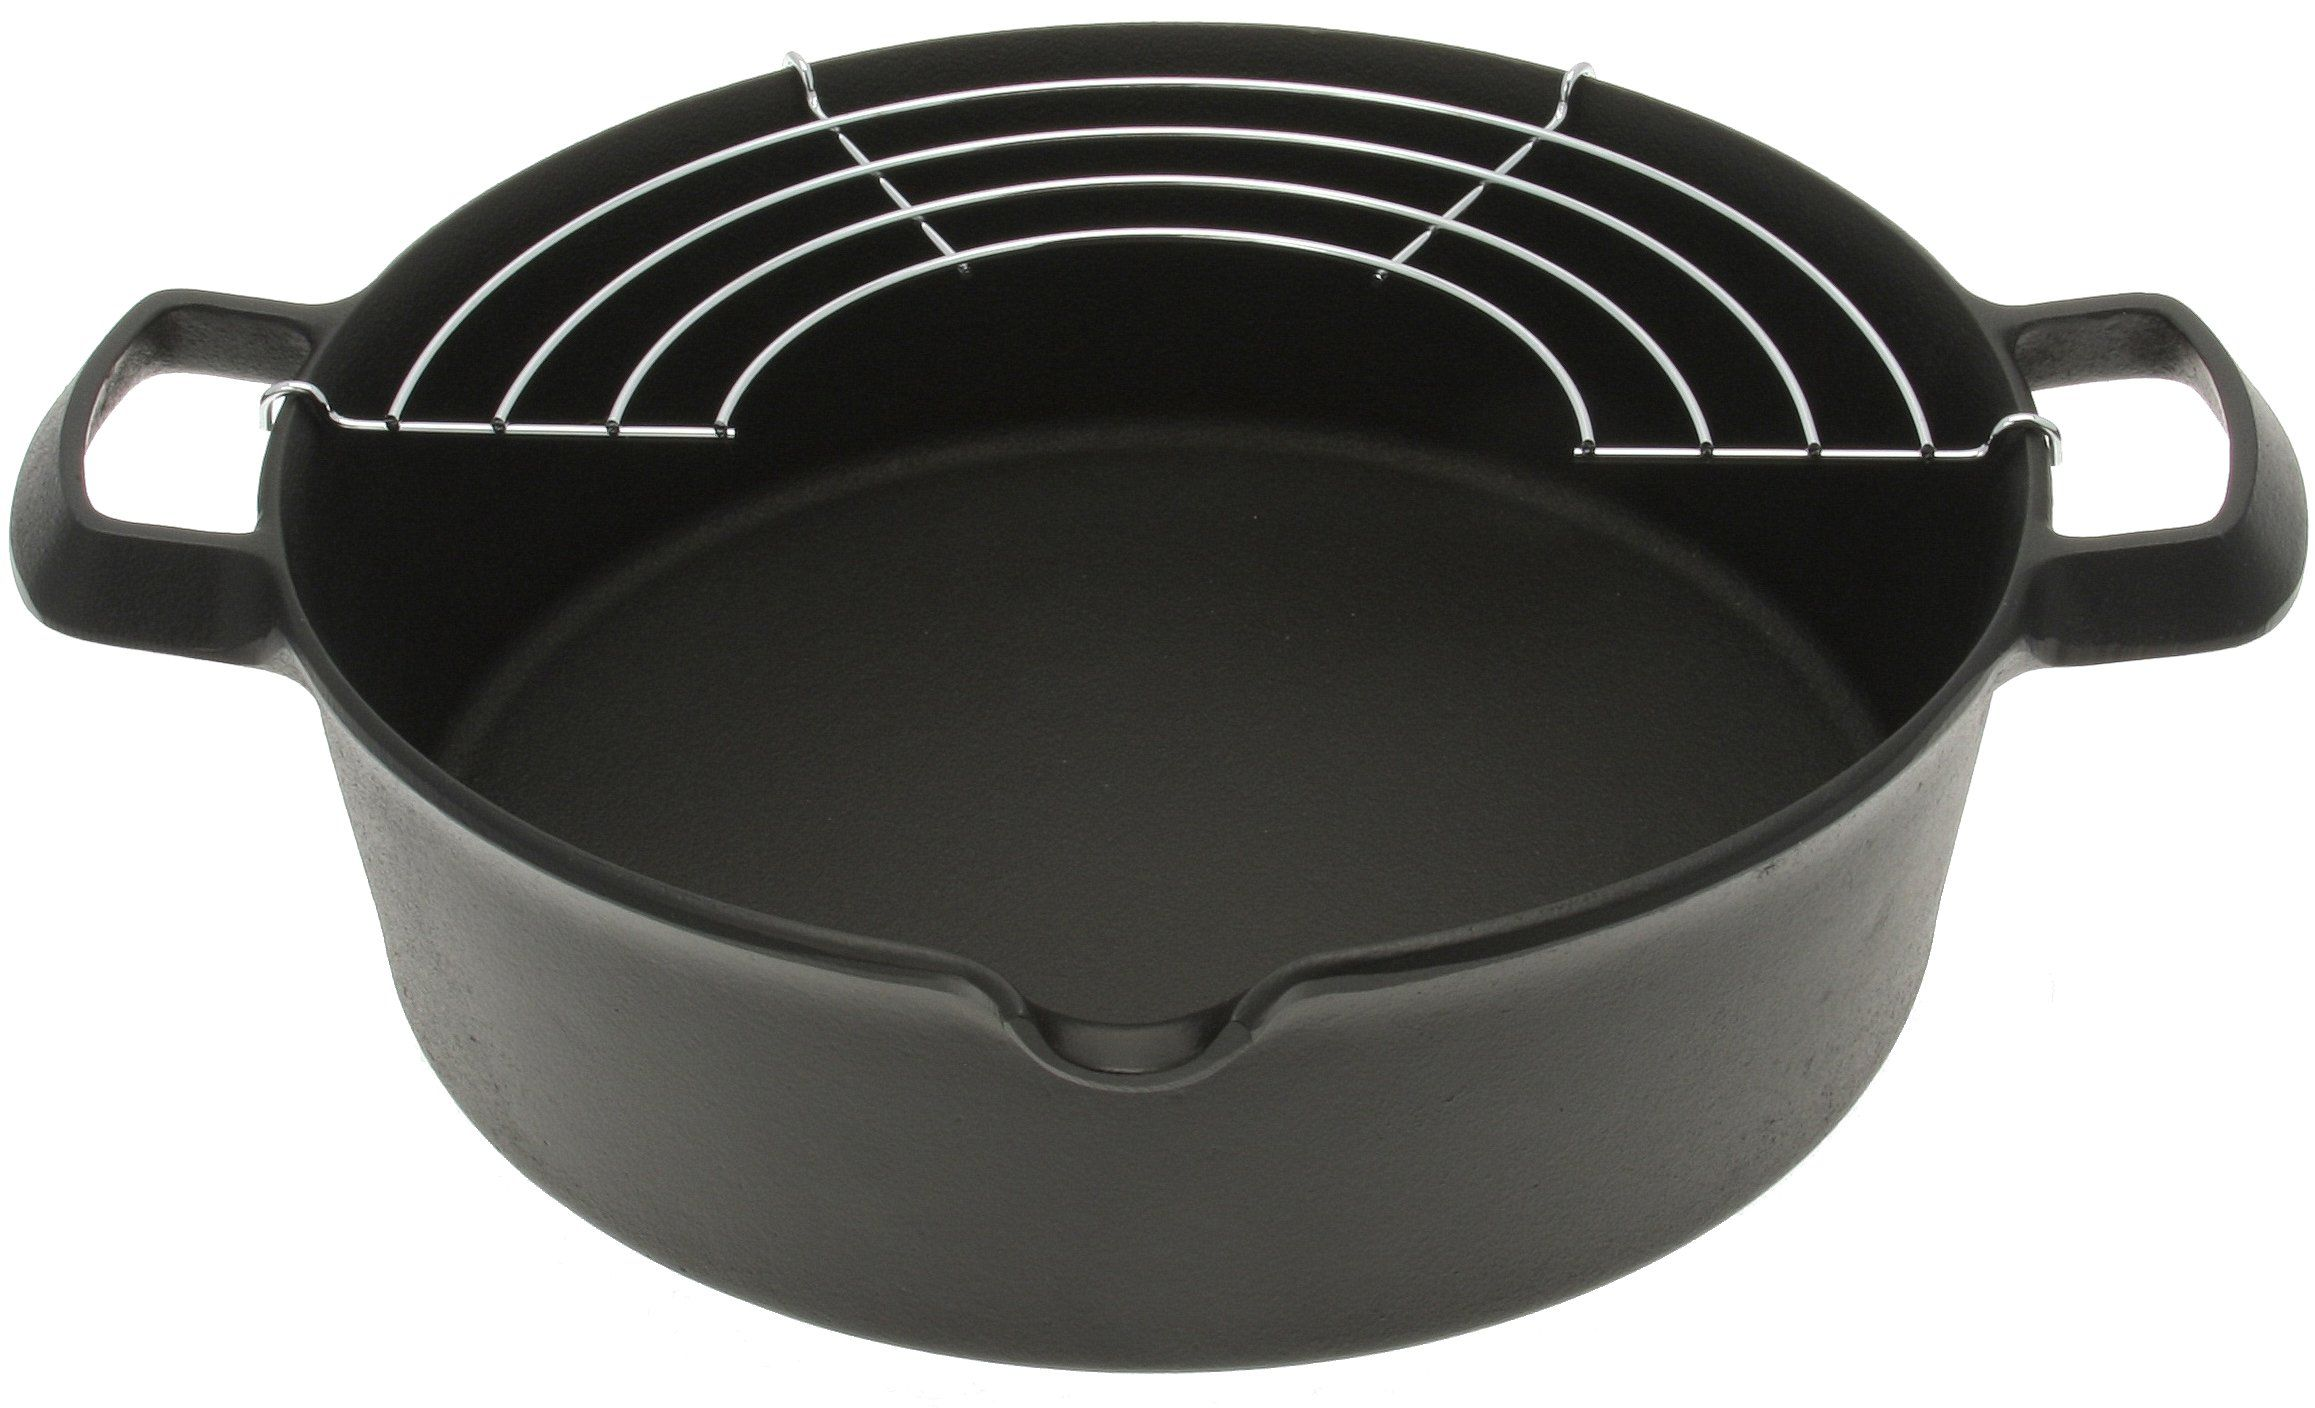 Amazon.com | Iwachu 410-185 Cast Iron Tempura and Deep-Fry Pan with Wire Rack, Large, Black: Home & Kitchen, Kitchen & Dining, Cookware, Woks & Stir-Fry Pans